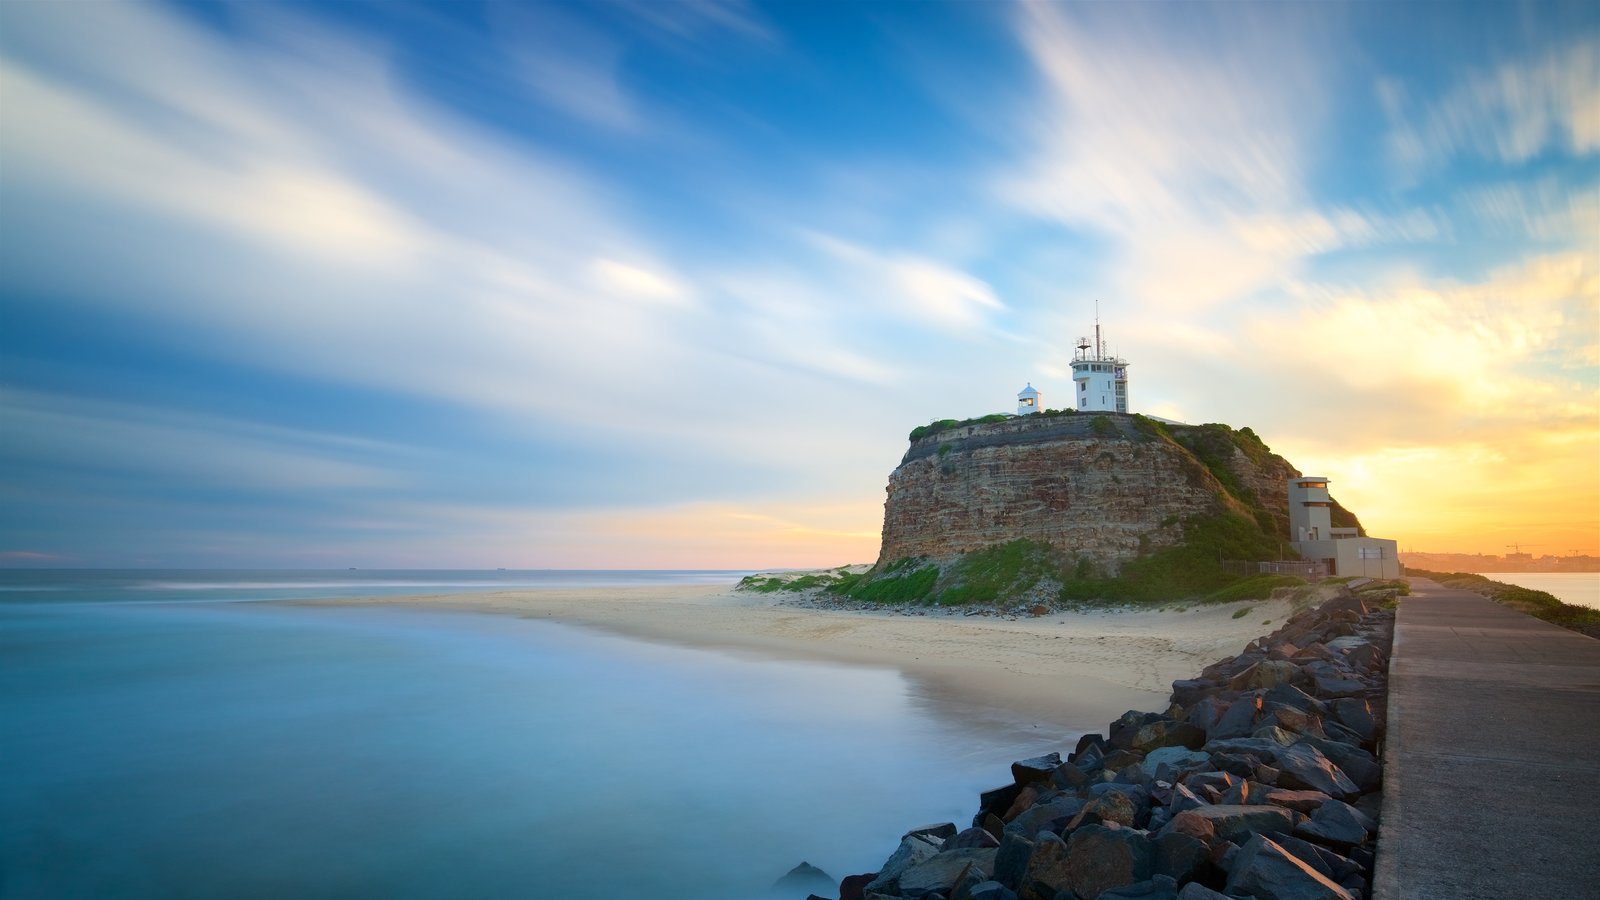 New South Wales featuring a lighthouse, general coastal views and a sunset